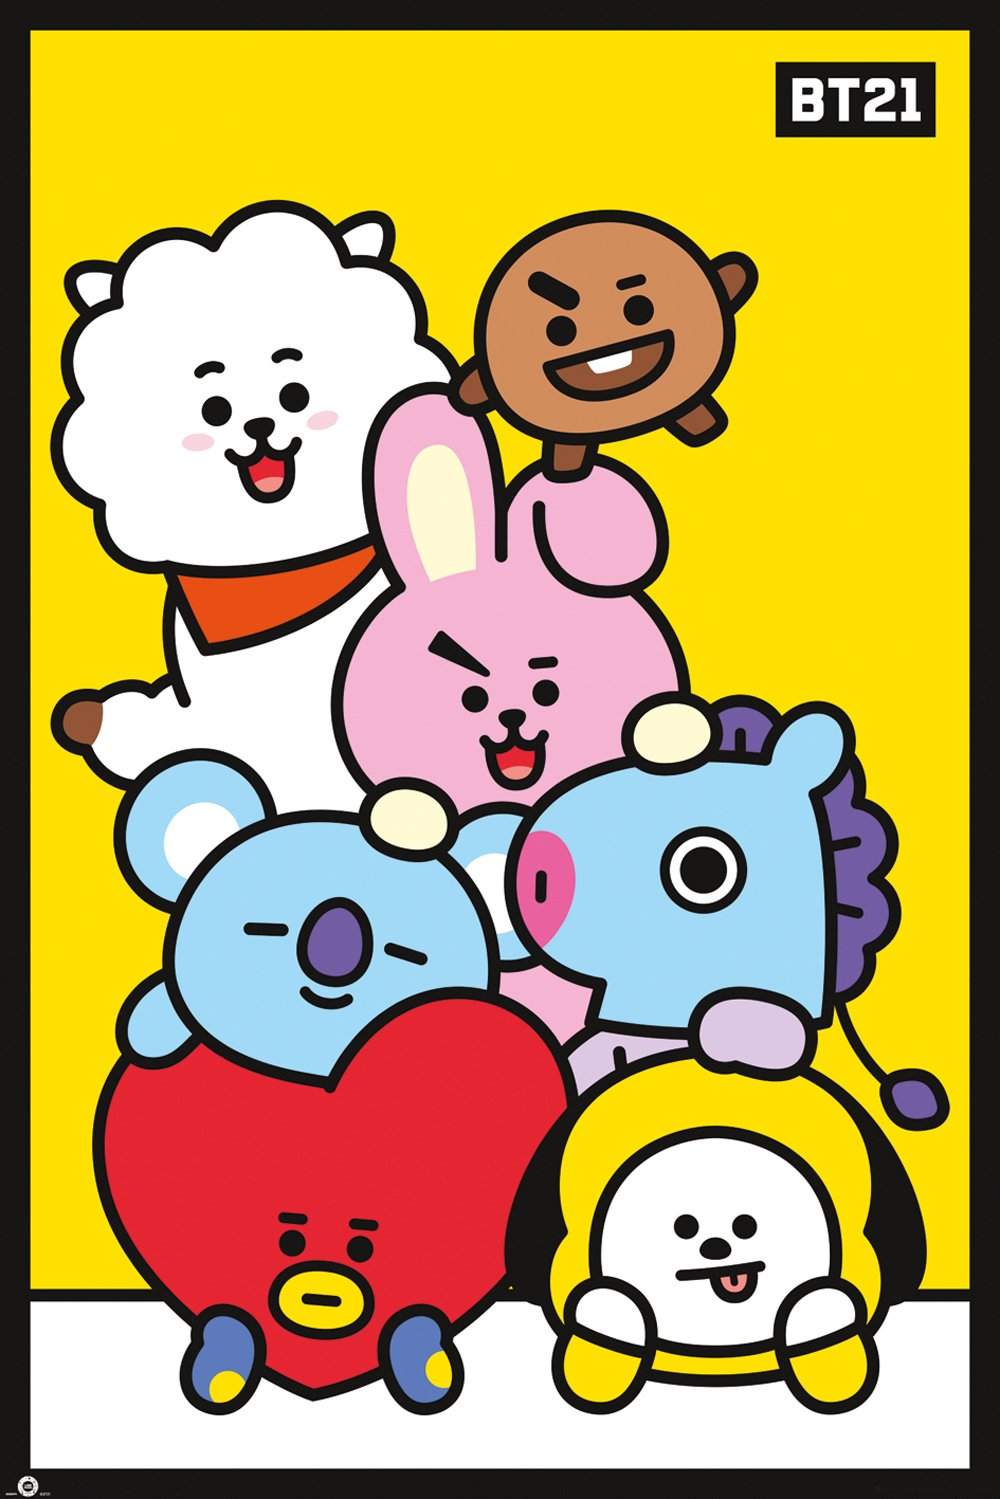 Image result for bt21 group photo